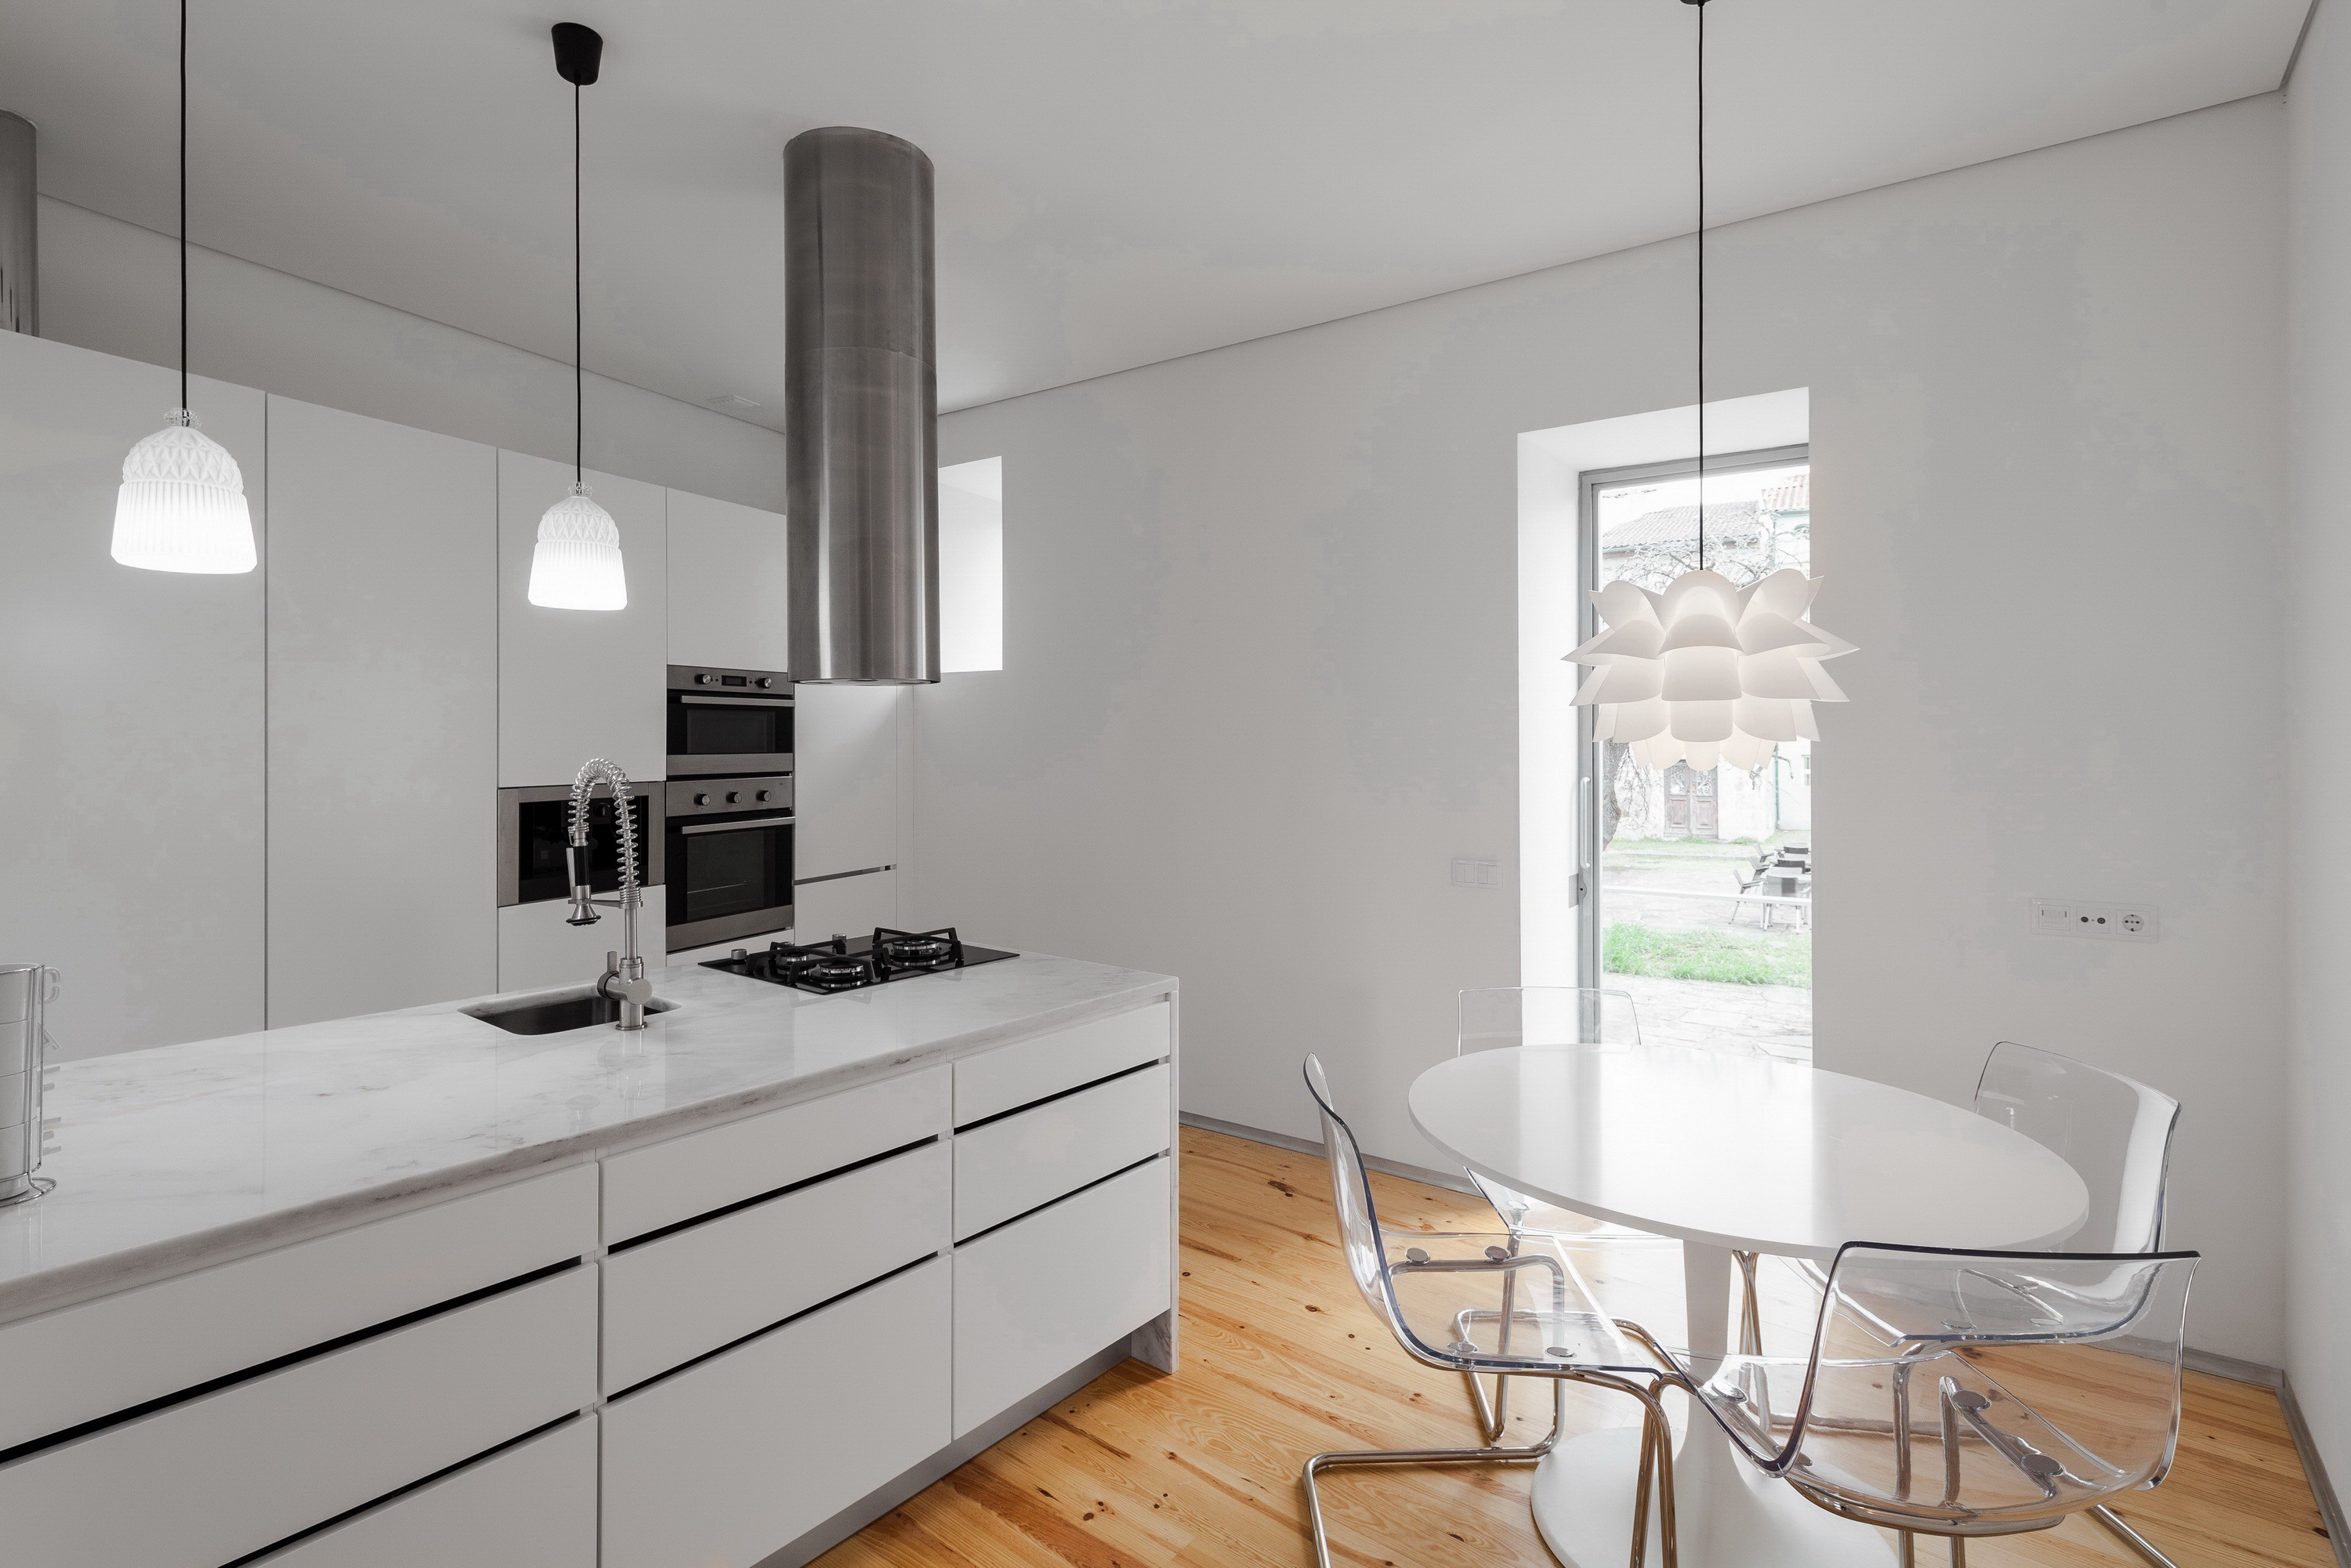 Three Cusps Chalet by Tiago do Vale Arquitectos